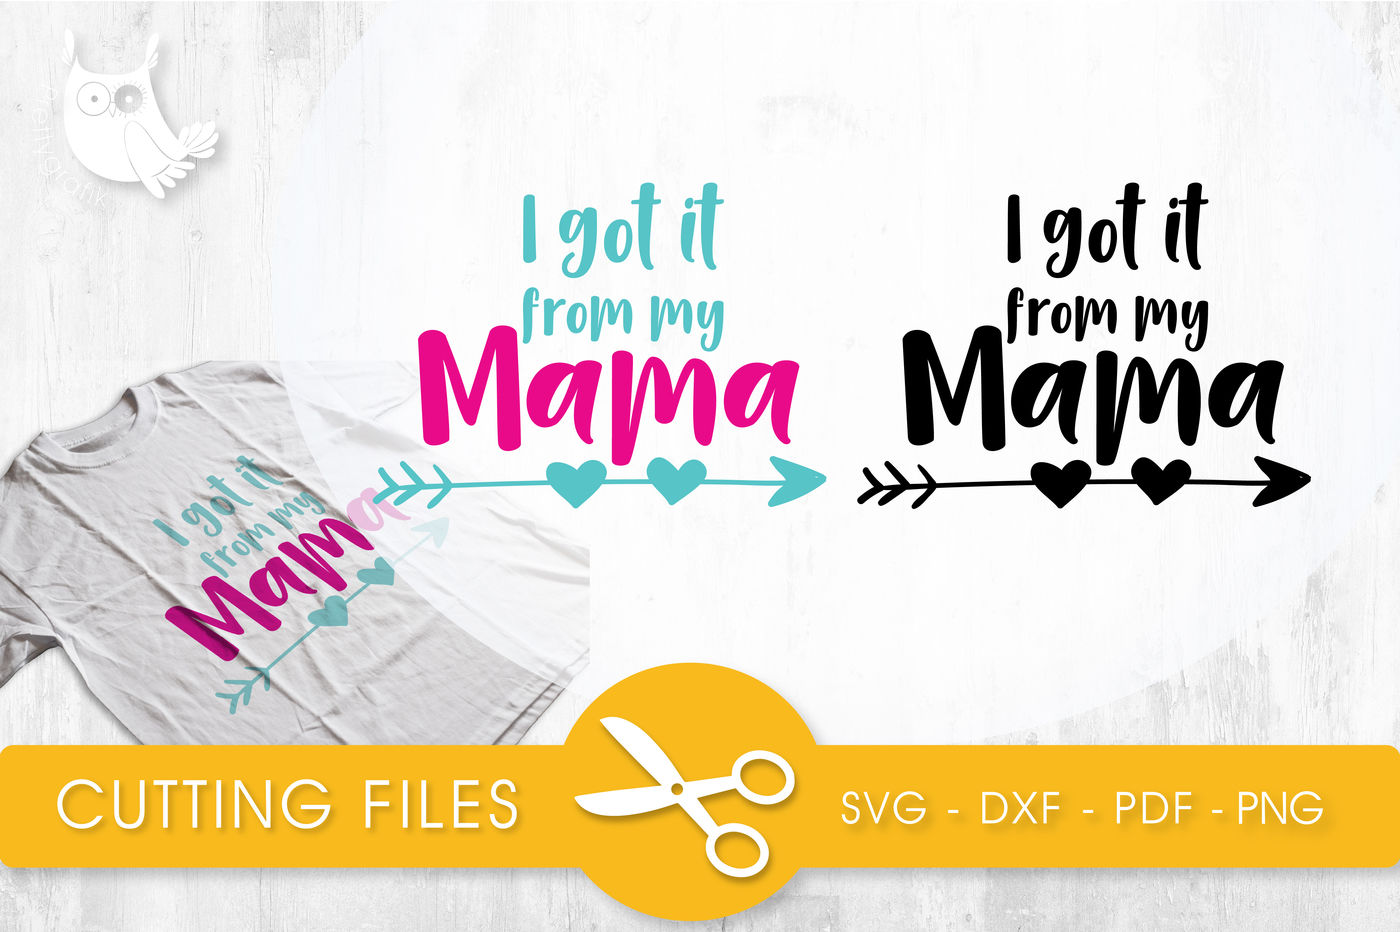 Get I Got It From My Mama She Got It From Me Svg Dxf Eps Png Cut File Ò Cricut Ò Silhouette Image